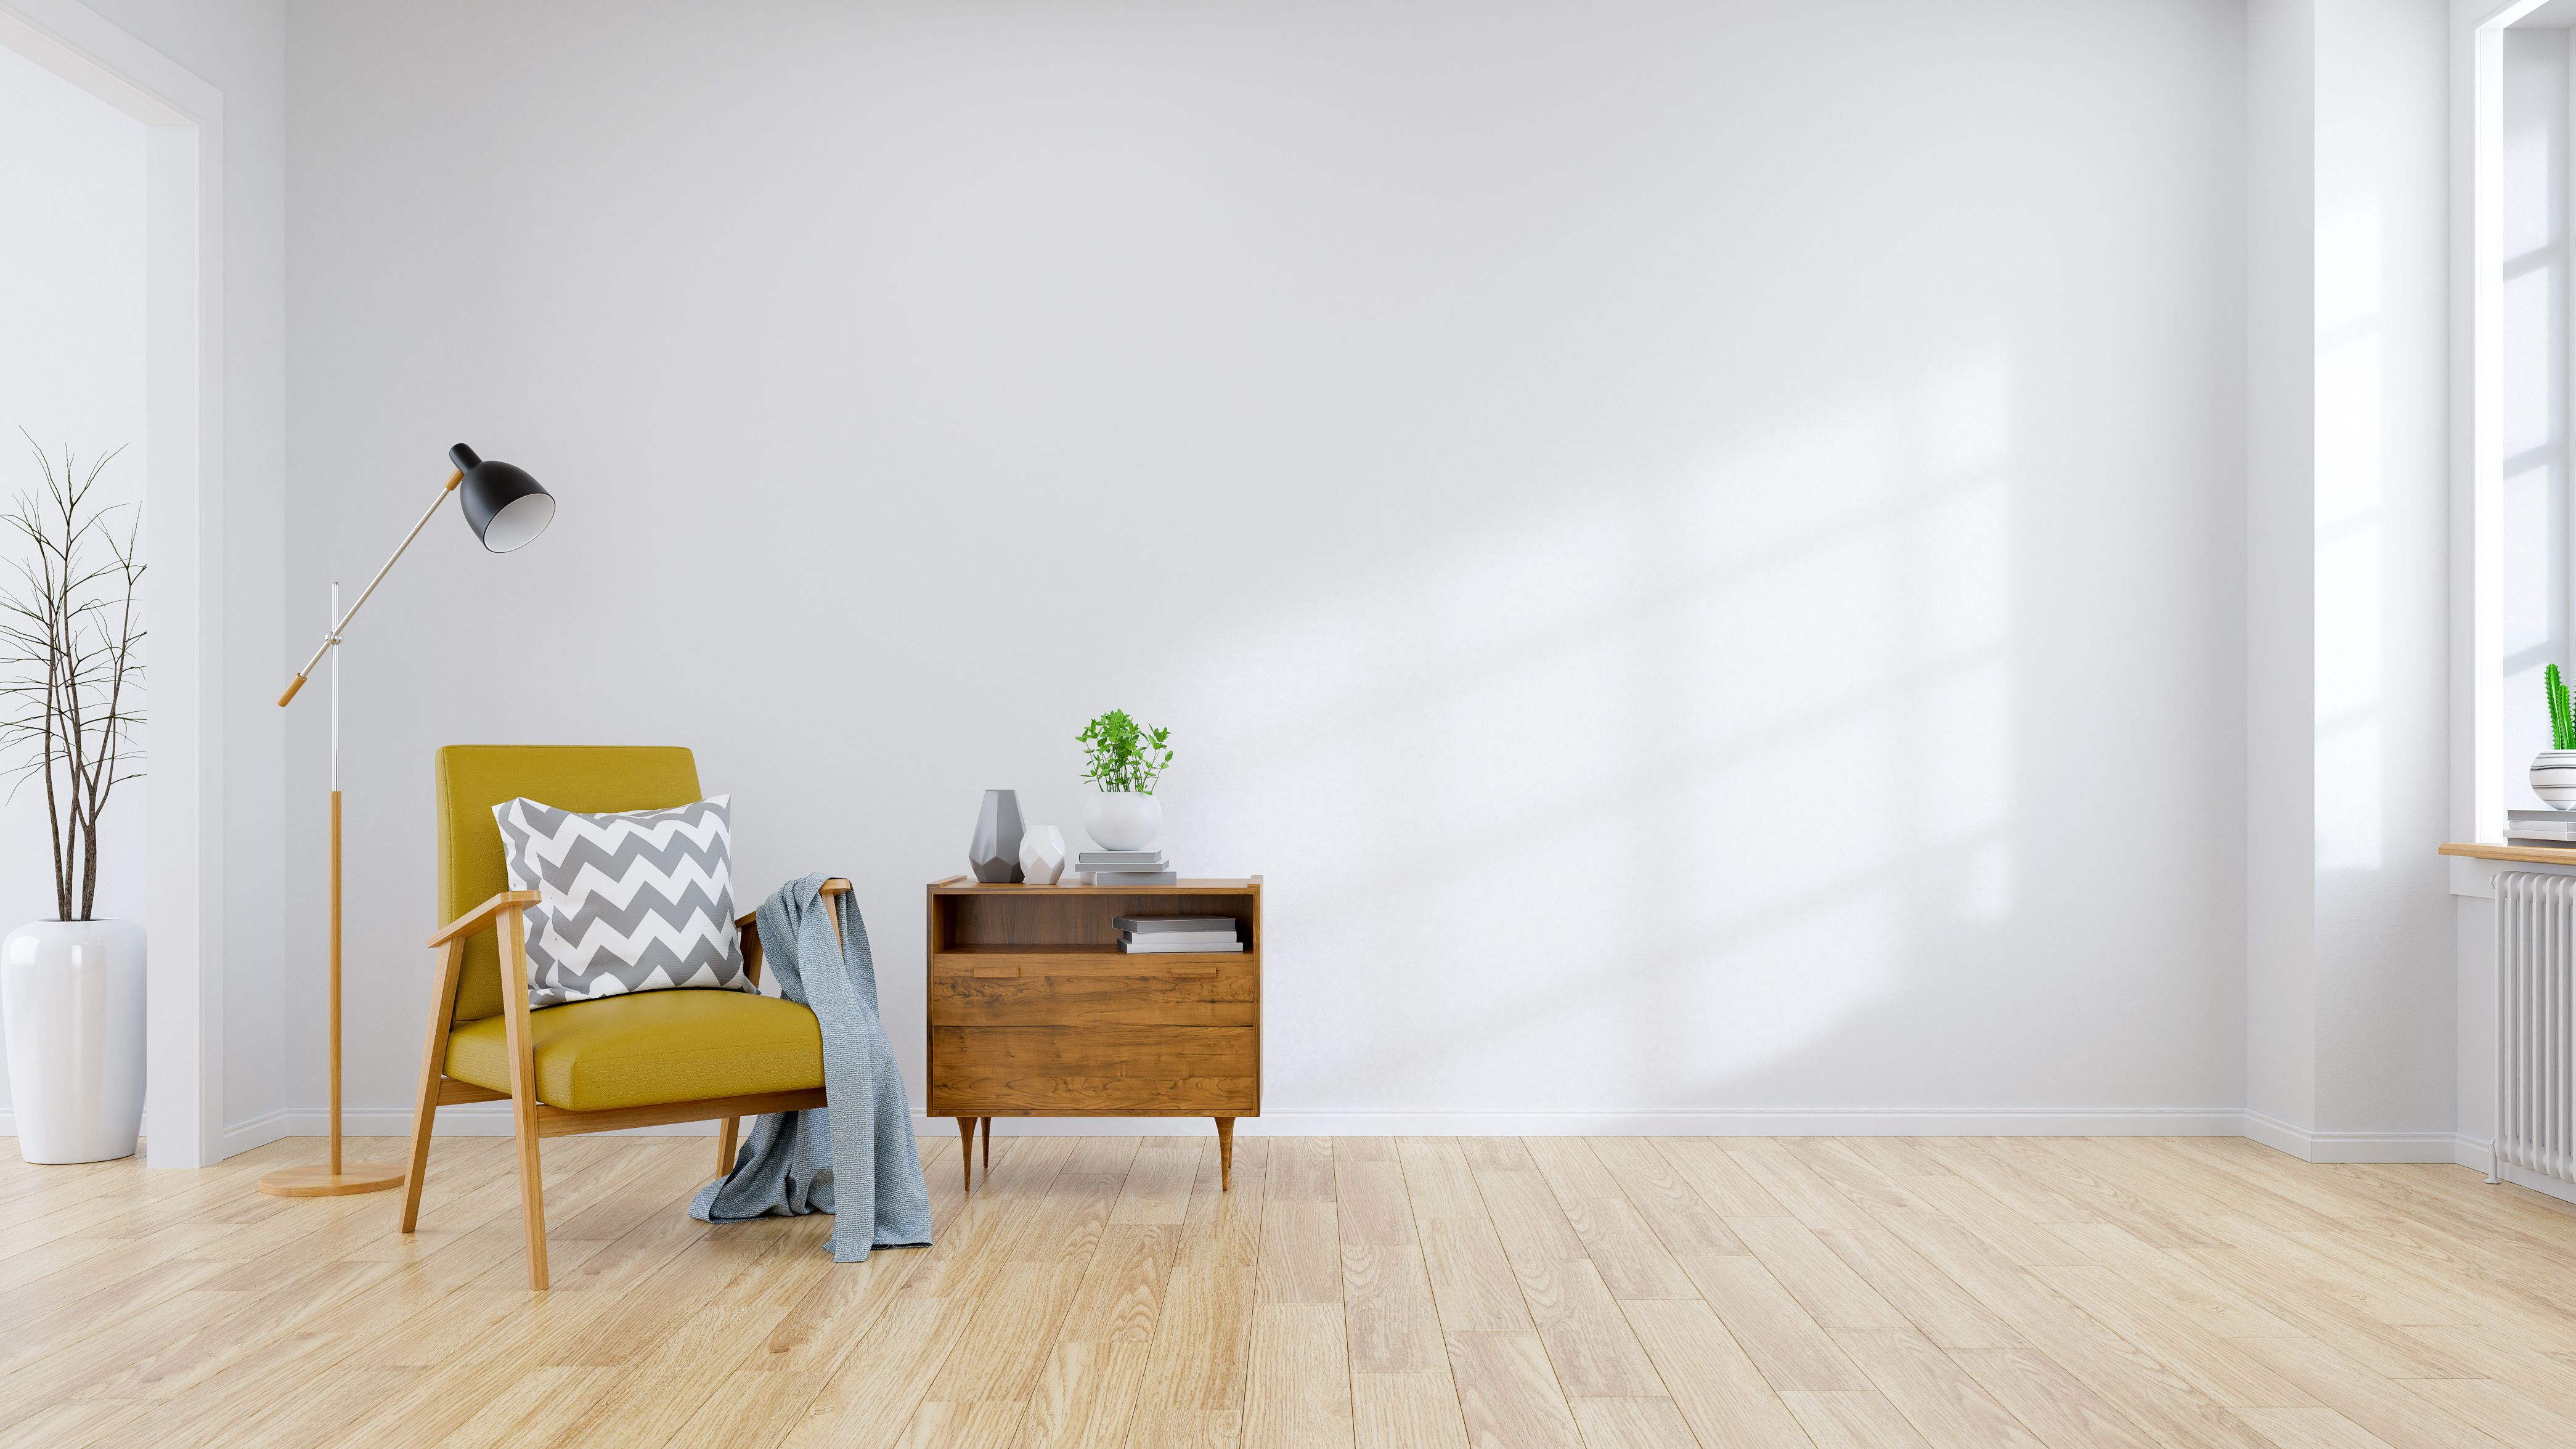 Wood Floor Types - Which Hardwood Flooring Is Right for You?